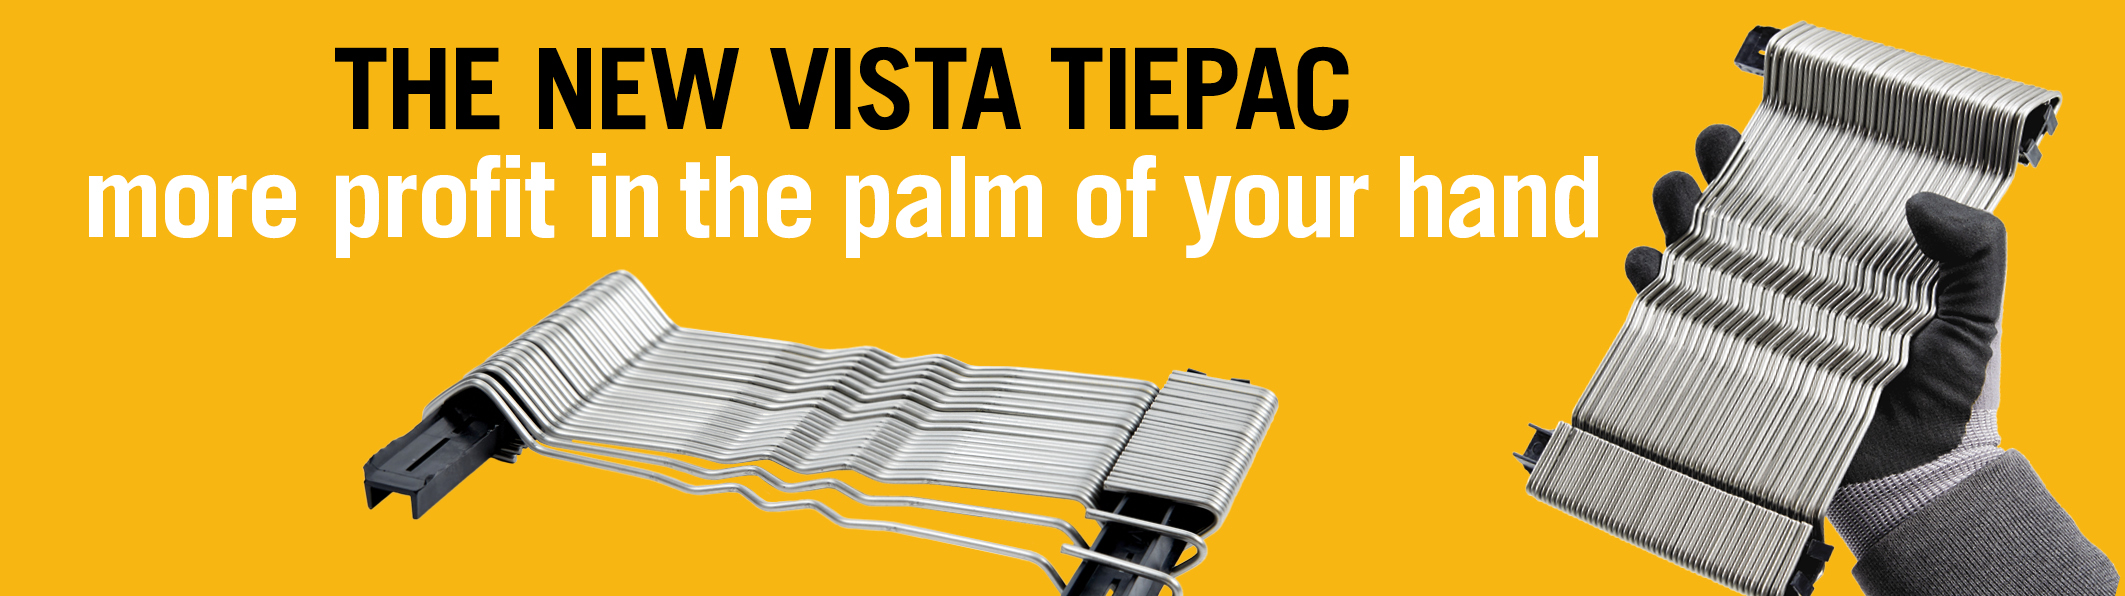 The New Vista Tiepac